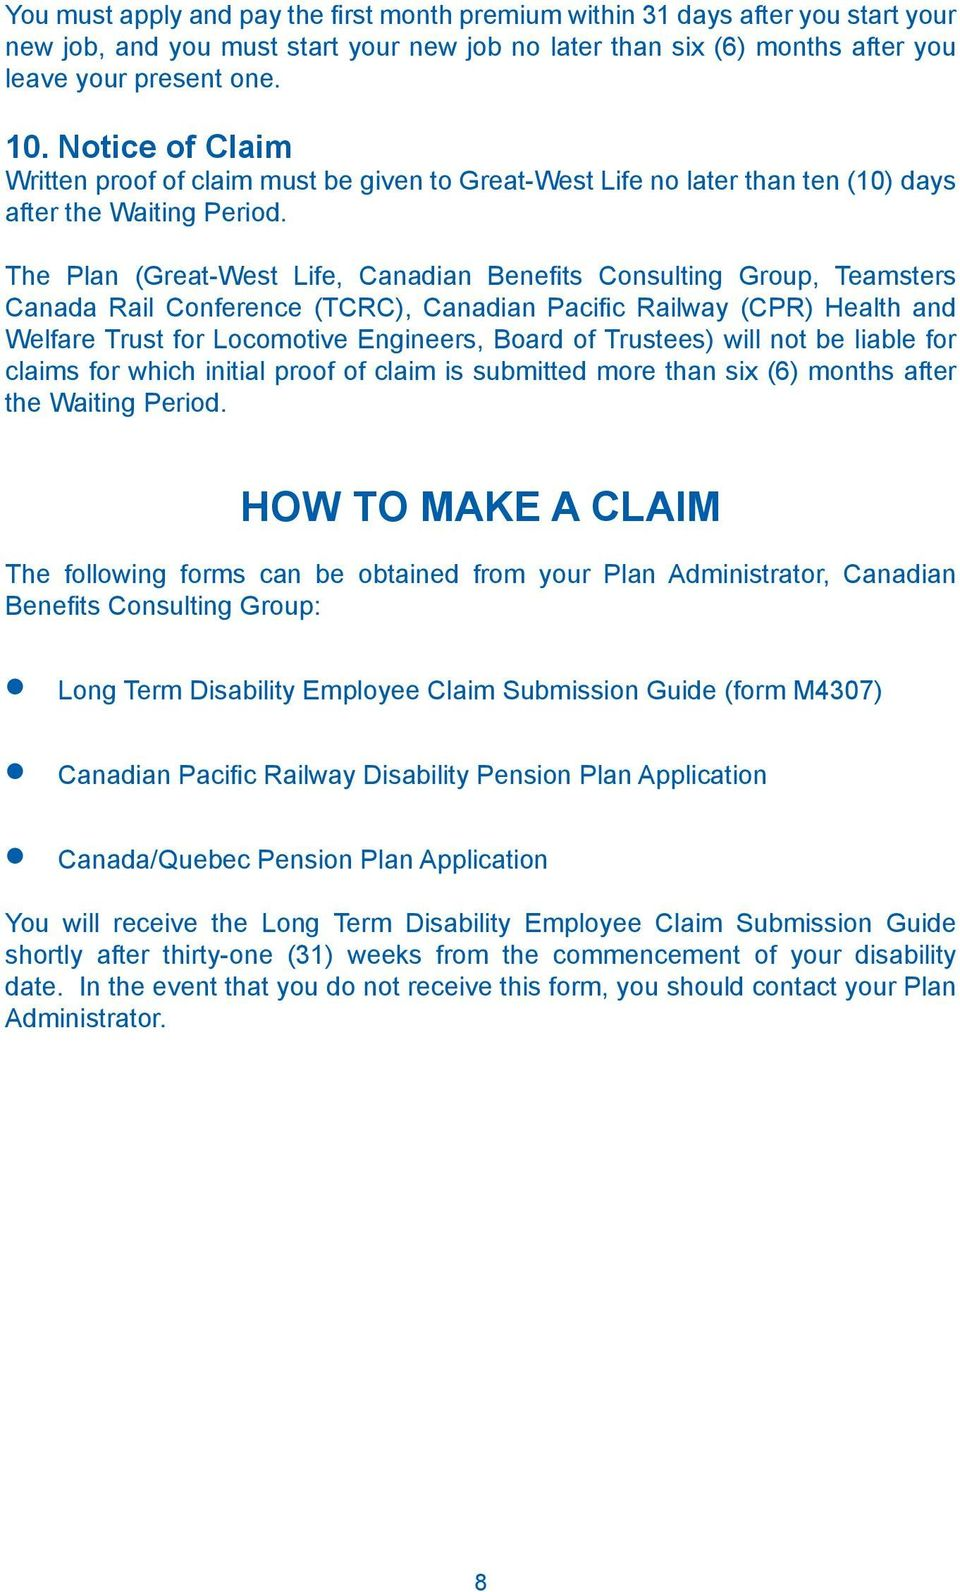 The Plan (Great-West Life, Canadian Benefits Consulting Group, Teamsters Canada Rail Conference (TCRC), Canadian Pacific Railway (CPR) Health and Welfare Trust for Locomotive Engineers, Board of